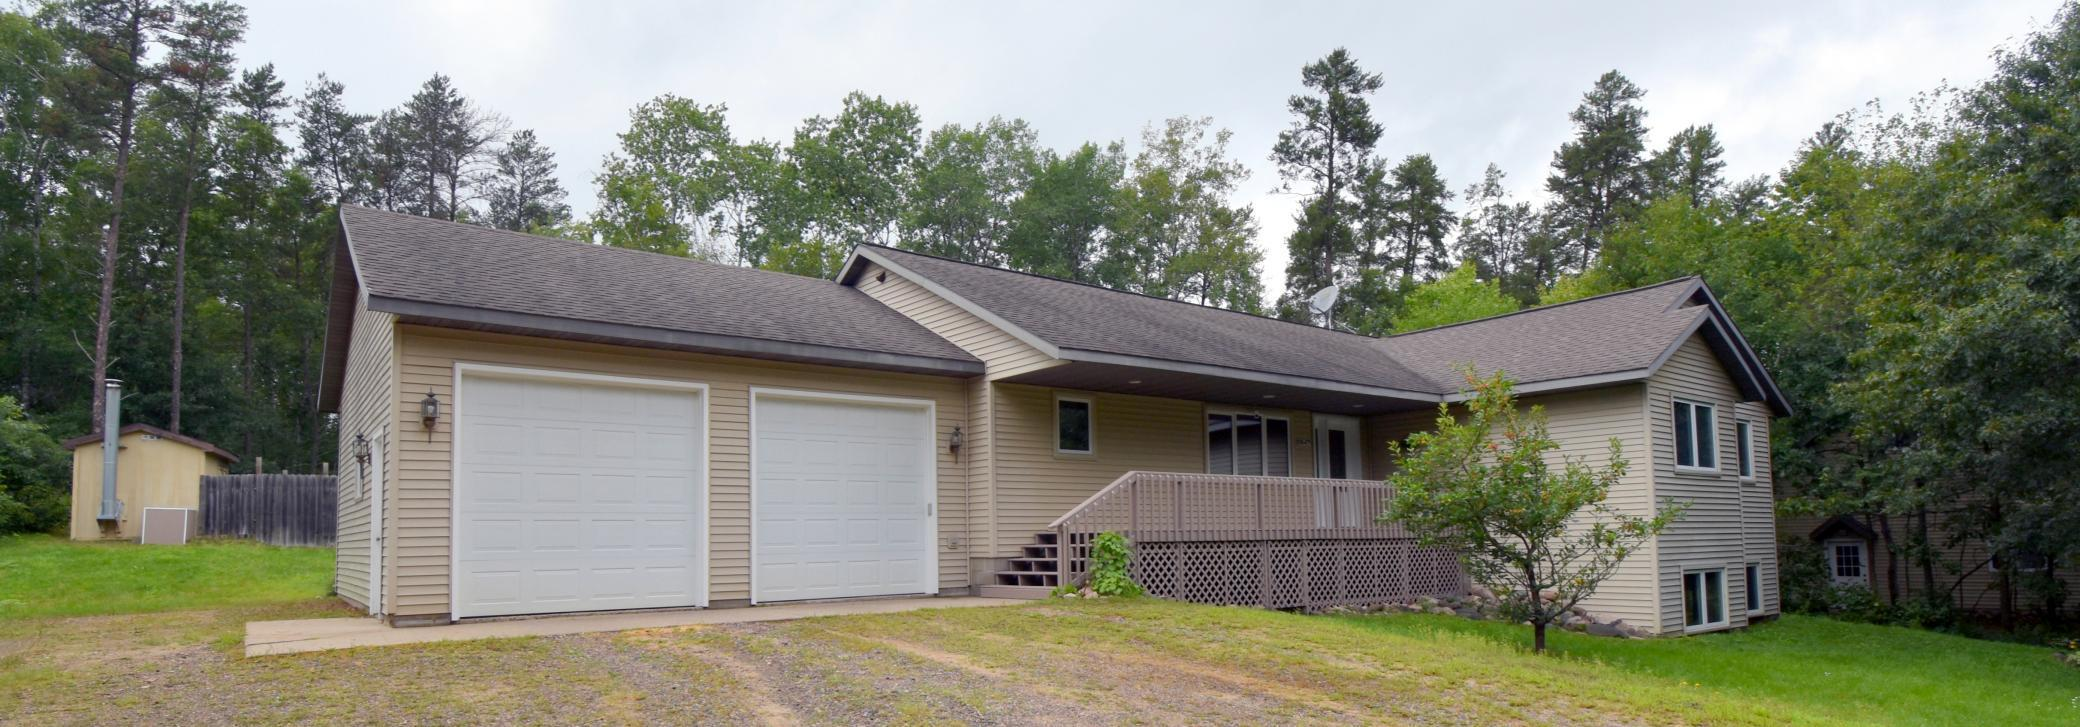 31647 Harvest Road Property Photo - Breezy Point, MN real estate listing